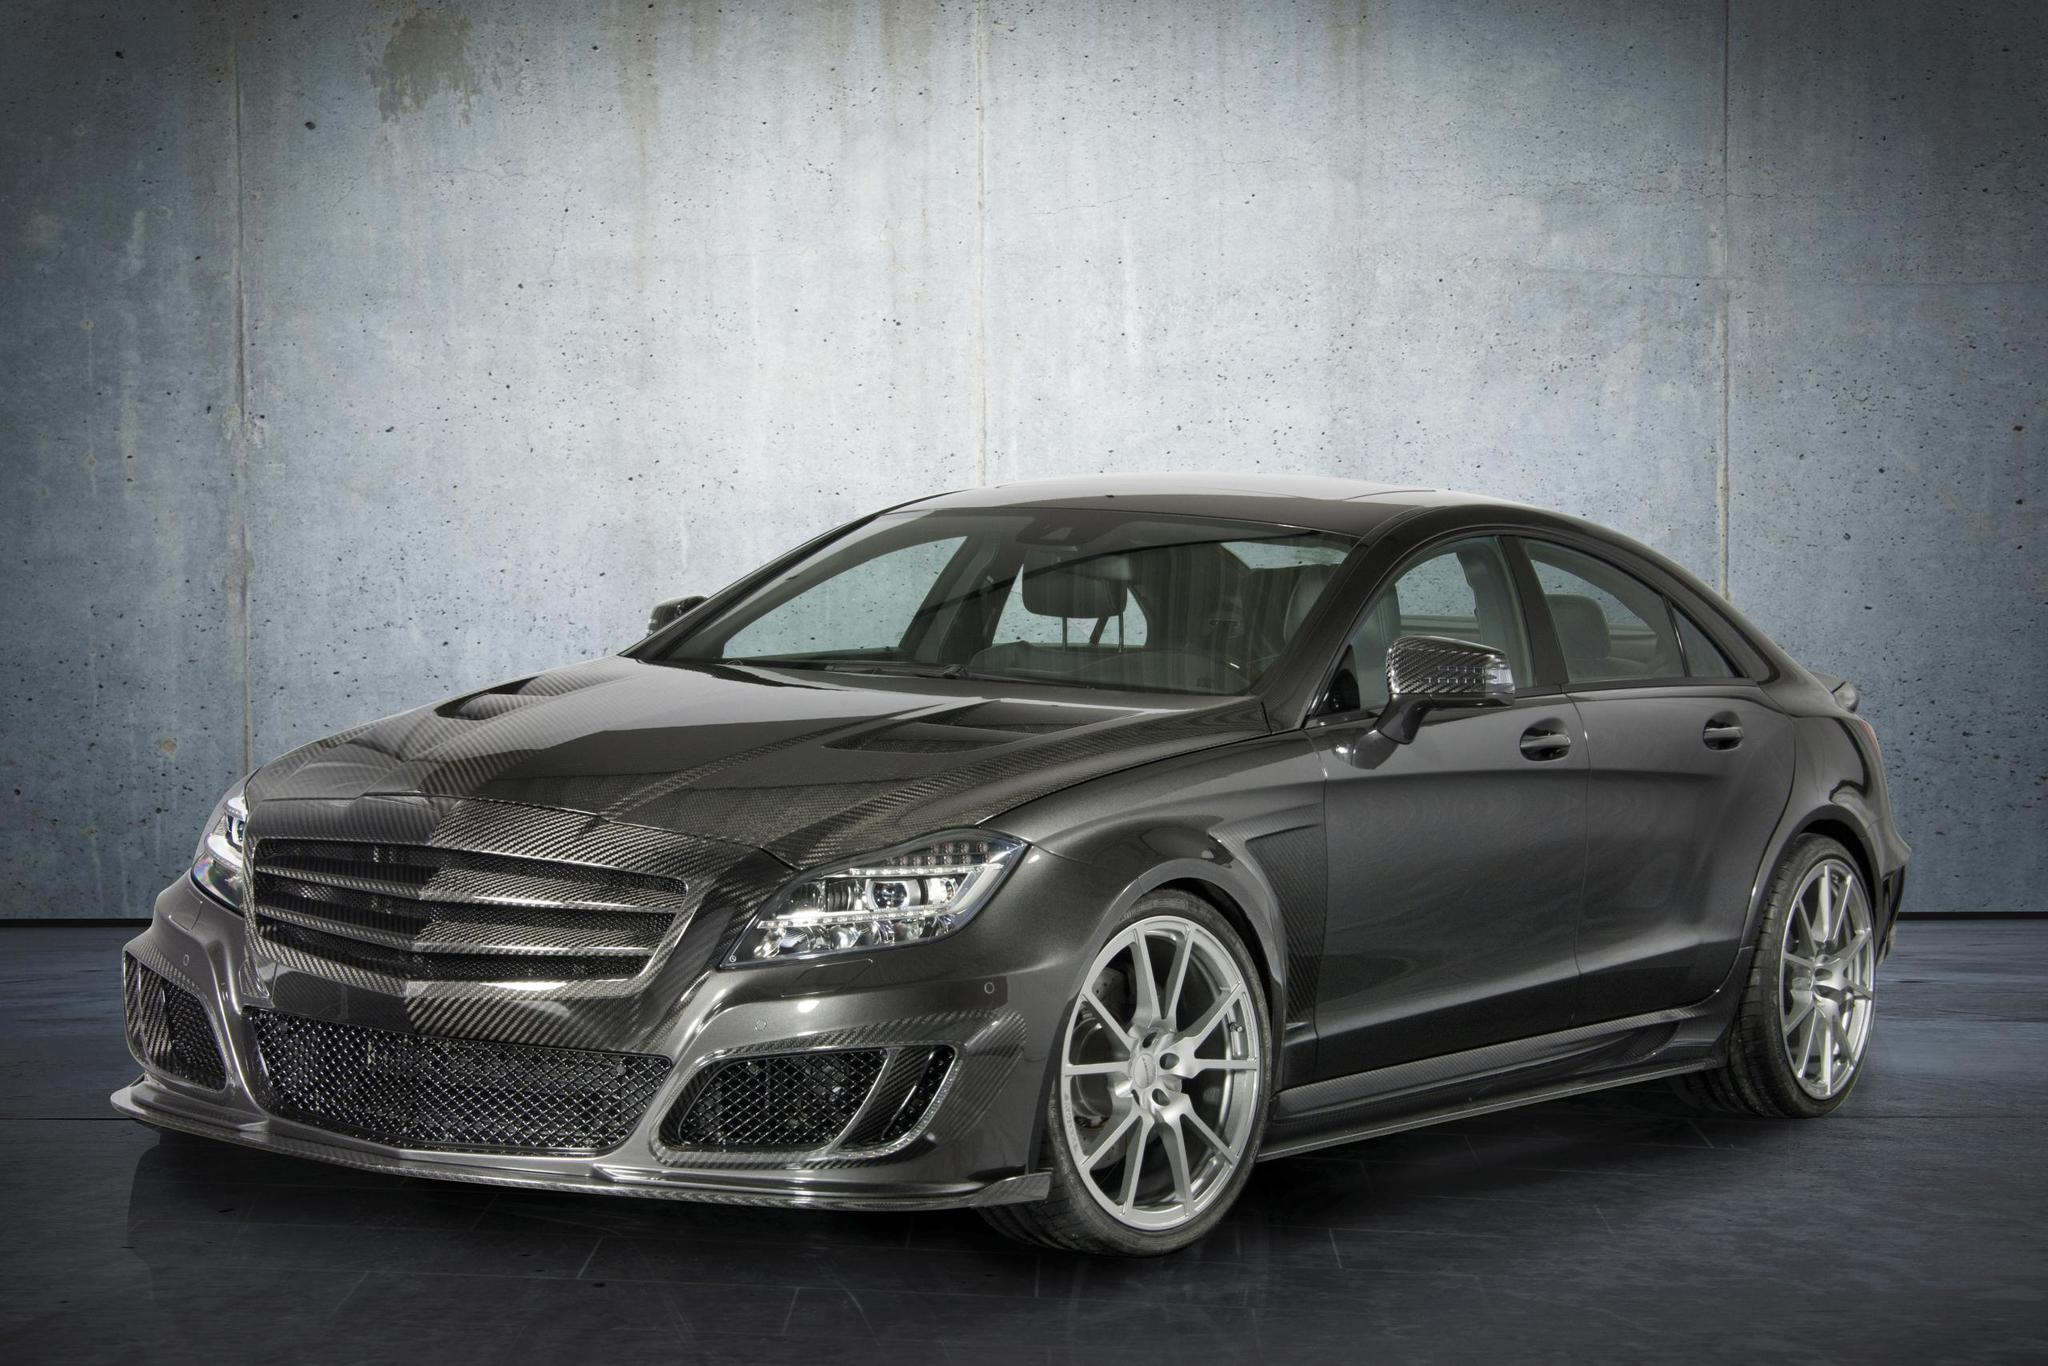 Mansory body kit for Mercedes-Benz CLS new model